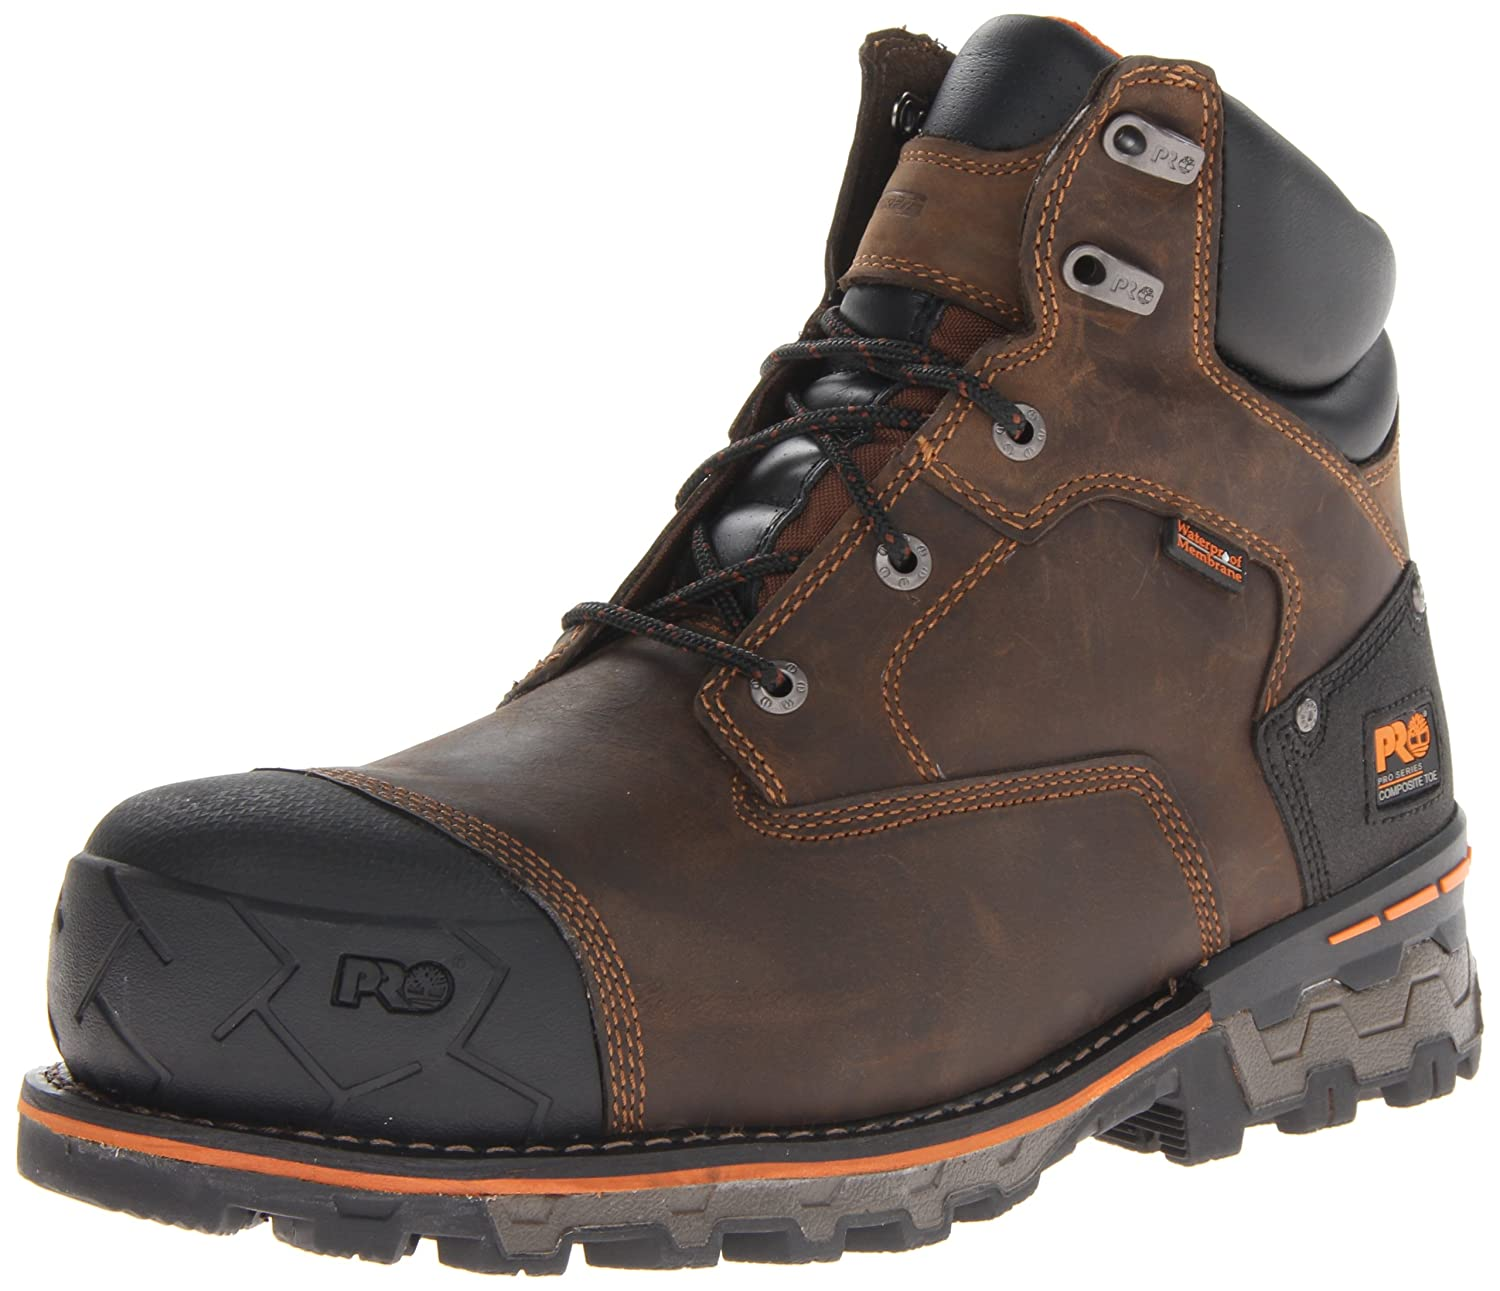 Quinto Pino Bota De Trabajo Impermeable Timberland Favorables Hombres vHhJ34WY